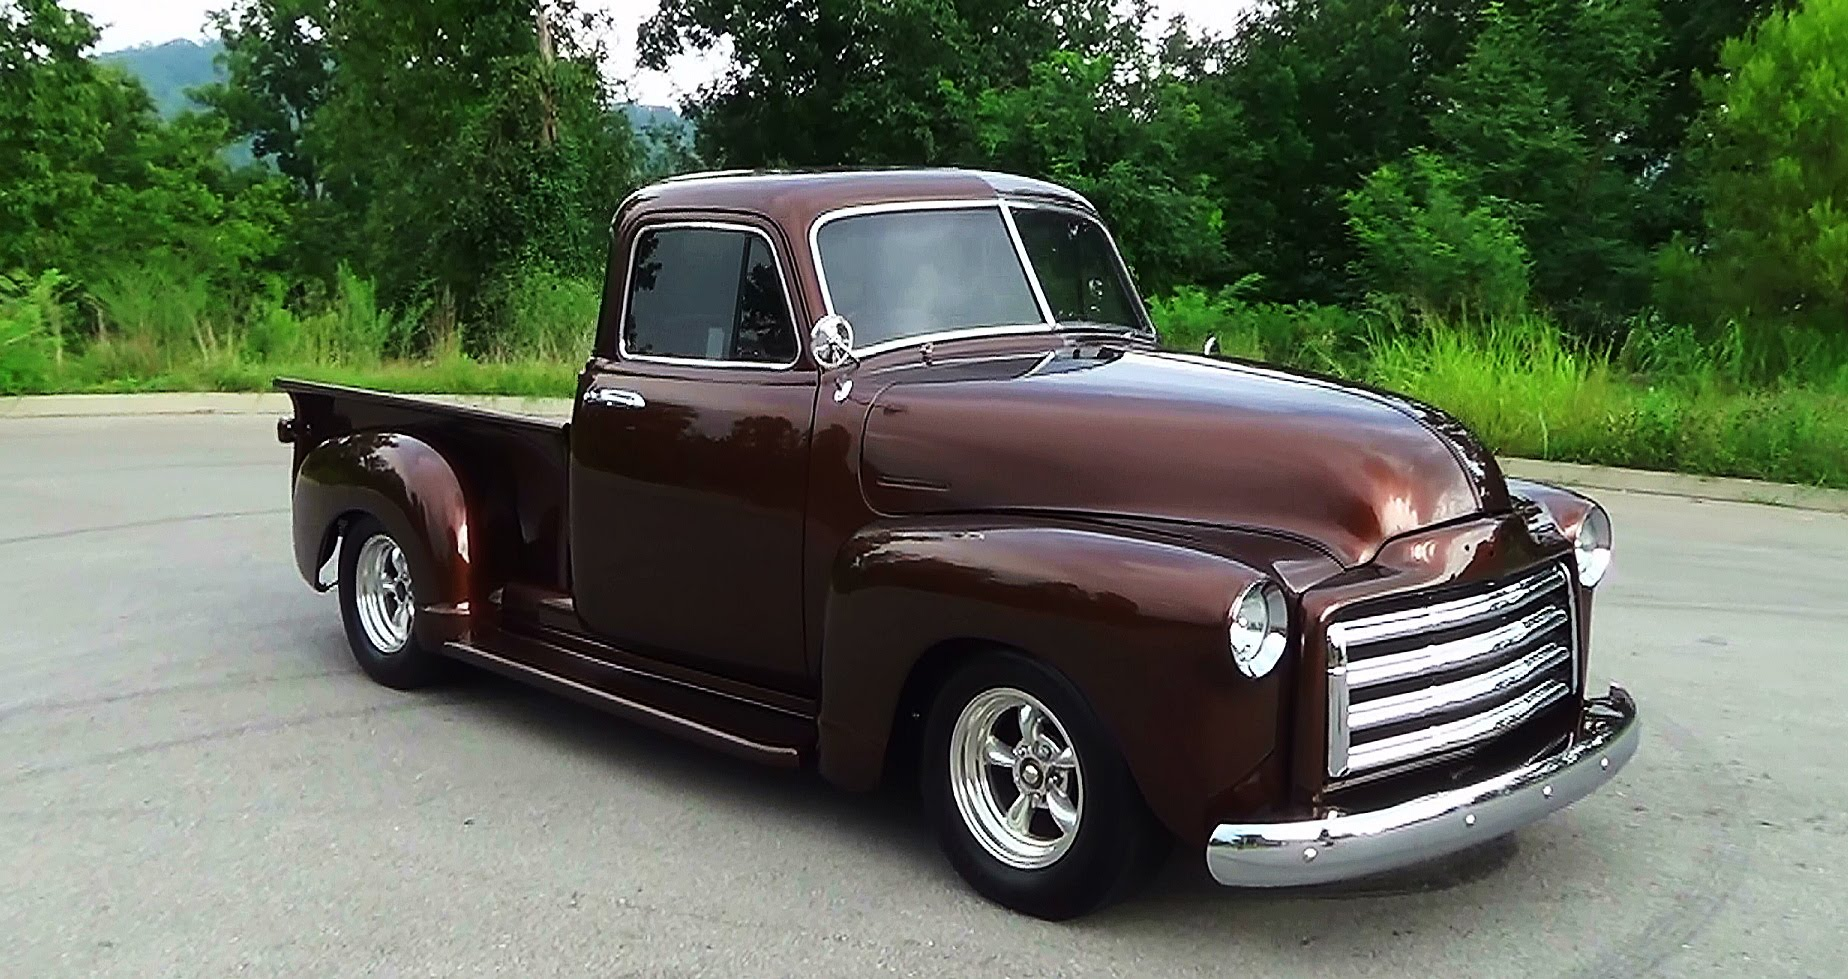 Carros Classicos Chevrolet Veraneio Amazona E Suburban additionally  likewise Chevy Truck With A Vortec X besides Hot Rat Street Rod Pro Touring Chevy Patina Shop Truck No Air Ride C in addition Interior Web. on 1952 chevy 3100